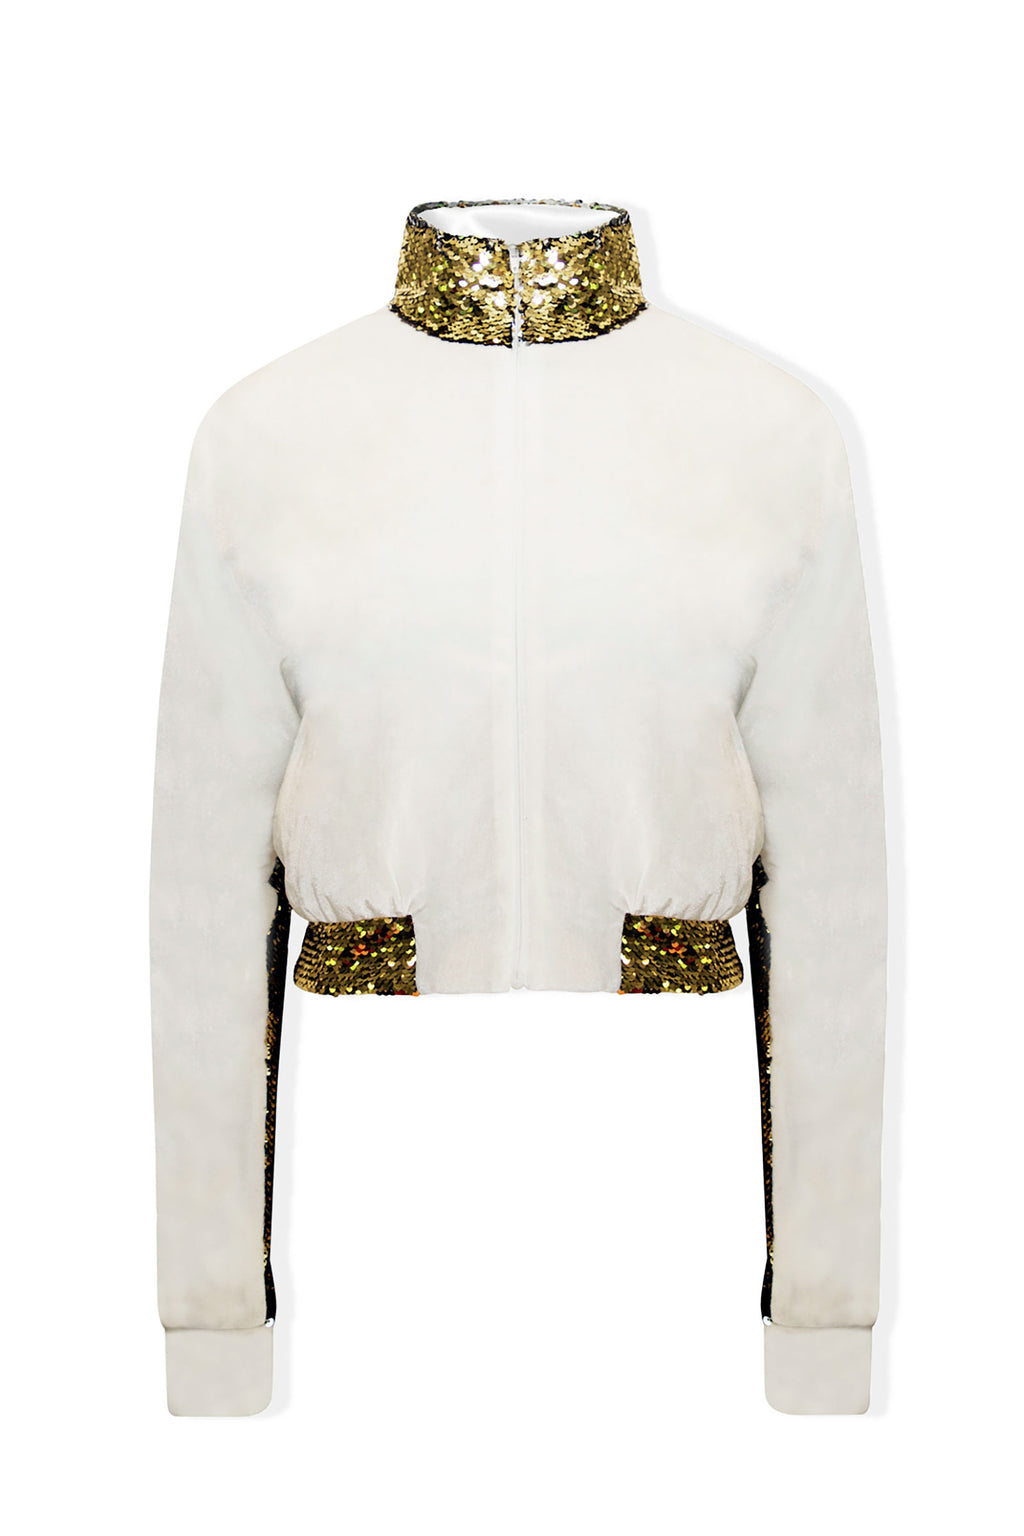 Ilona Rich White Velvet Gold Sequin Detail Crop Jacket